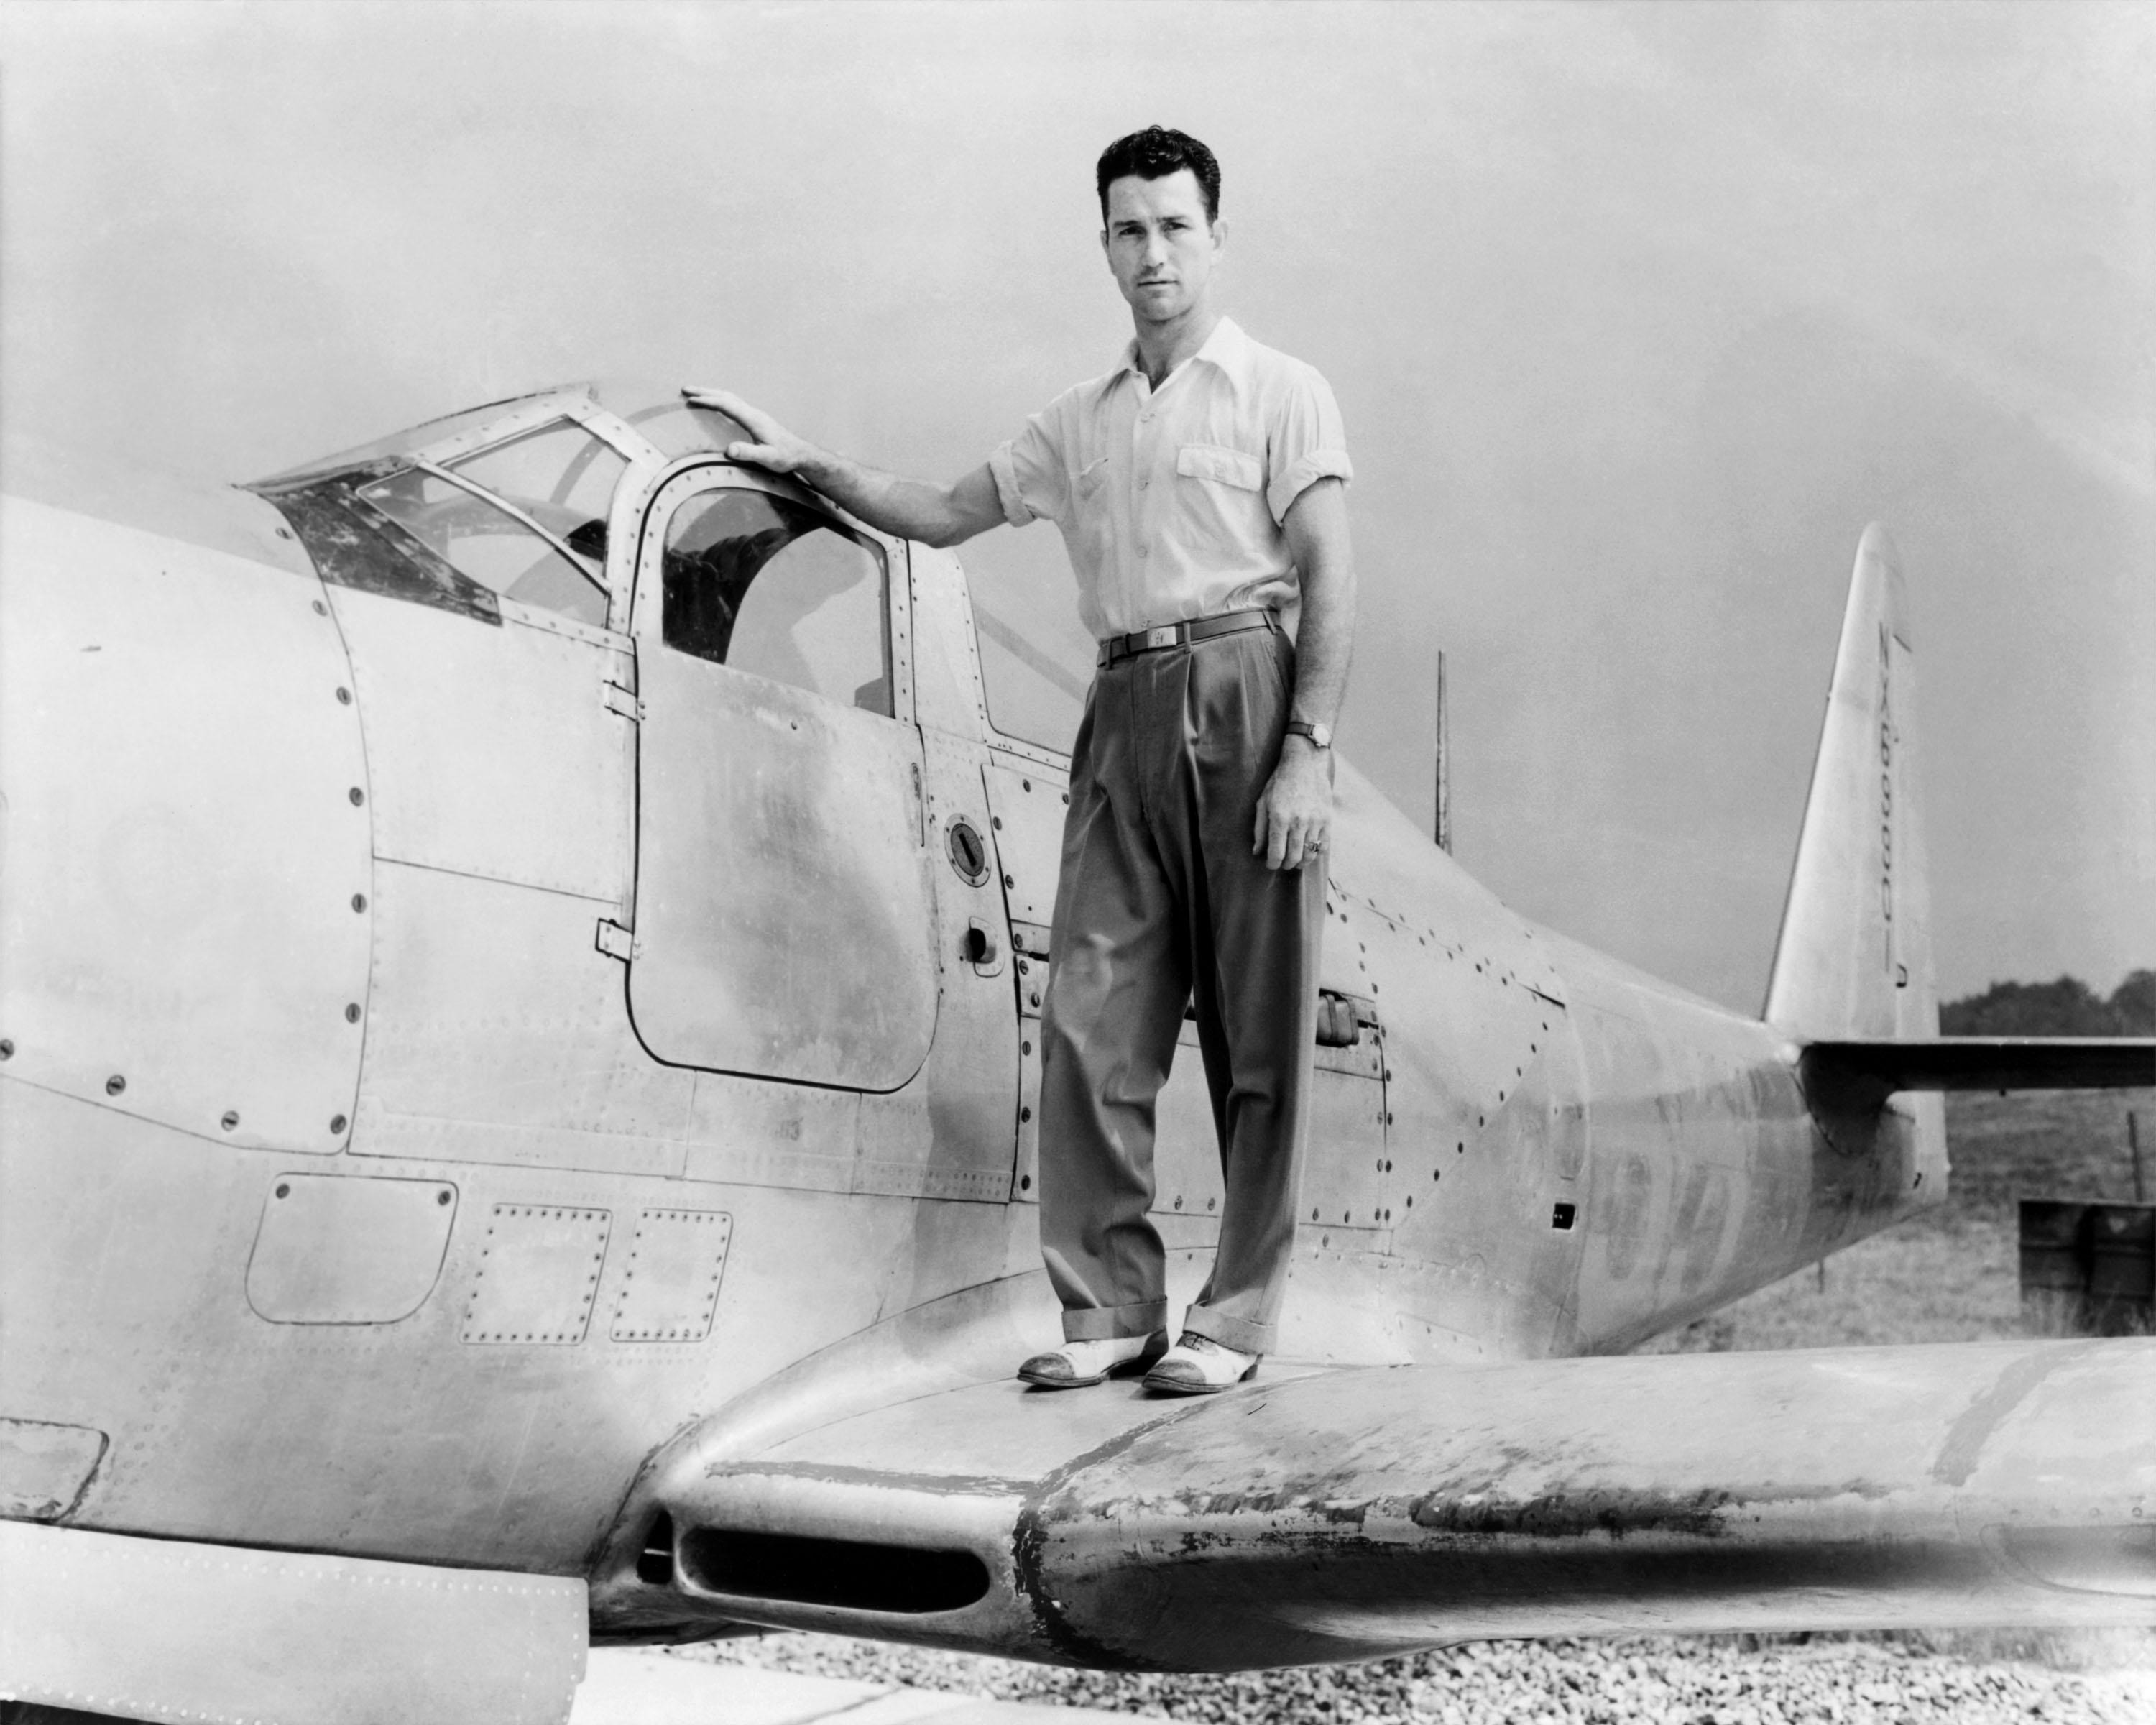 Black and white image of man standing on the wing of a plane.